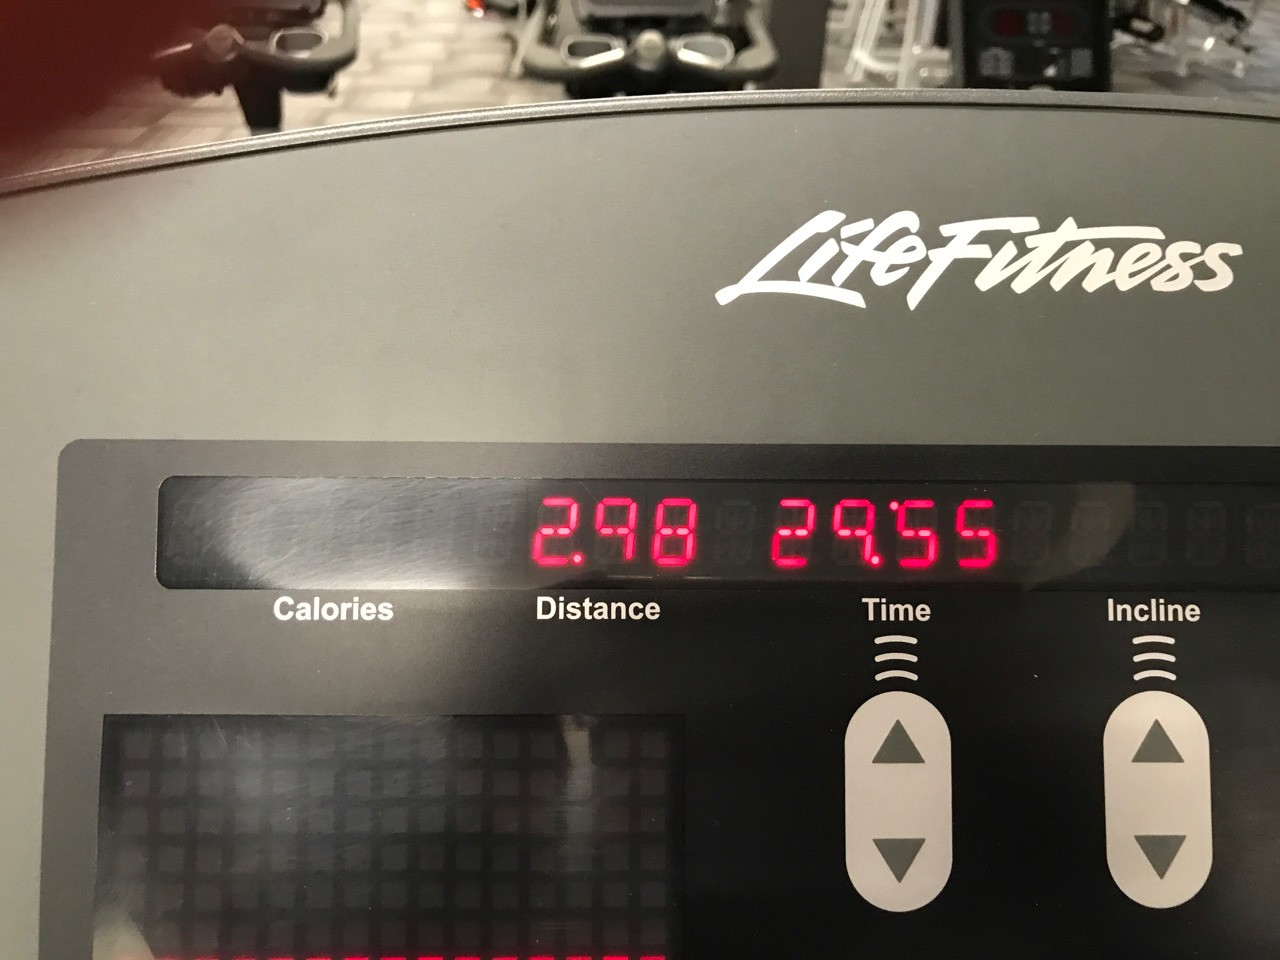 I was so close to 3km in half an hour! That's such a big deal for me because I tried my hardest at running as much as I could and I know I will get better and better! My goal for today is to reach 3km and I'm definitely going to try my hardest and pump it out! I'm so excited. I'm in such a mentally good space now in terms of happiness and health. I joined the gym on the first of June and today will be my 3rd time, I've made a schedule and set myself little goals to achieve to keep myself motivated! I have definitely been breaking a good sweat in doing this! And the best news of all, I've lost 4kgs ☺️😍 -Panda